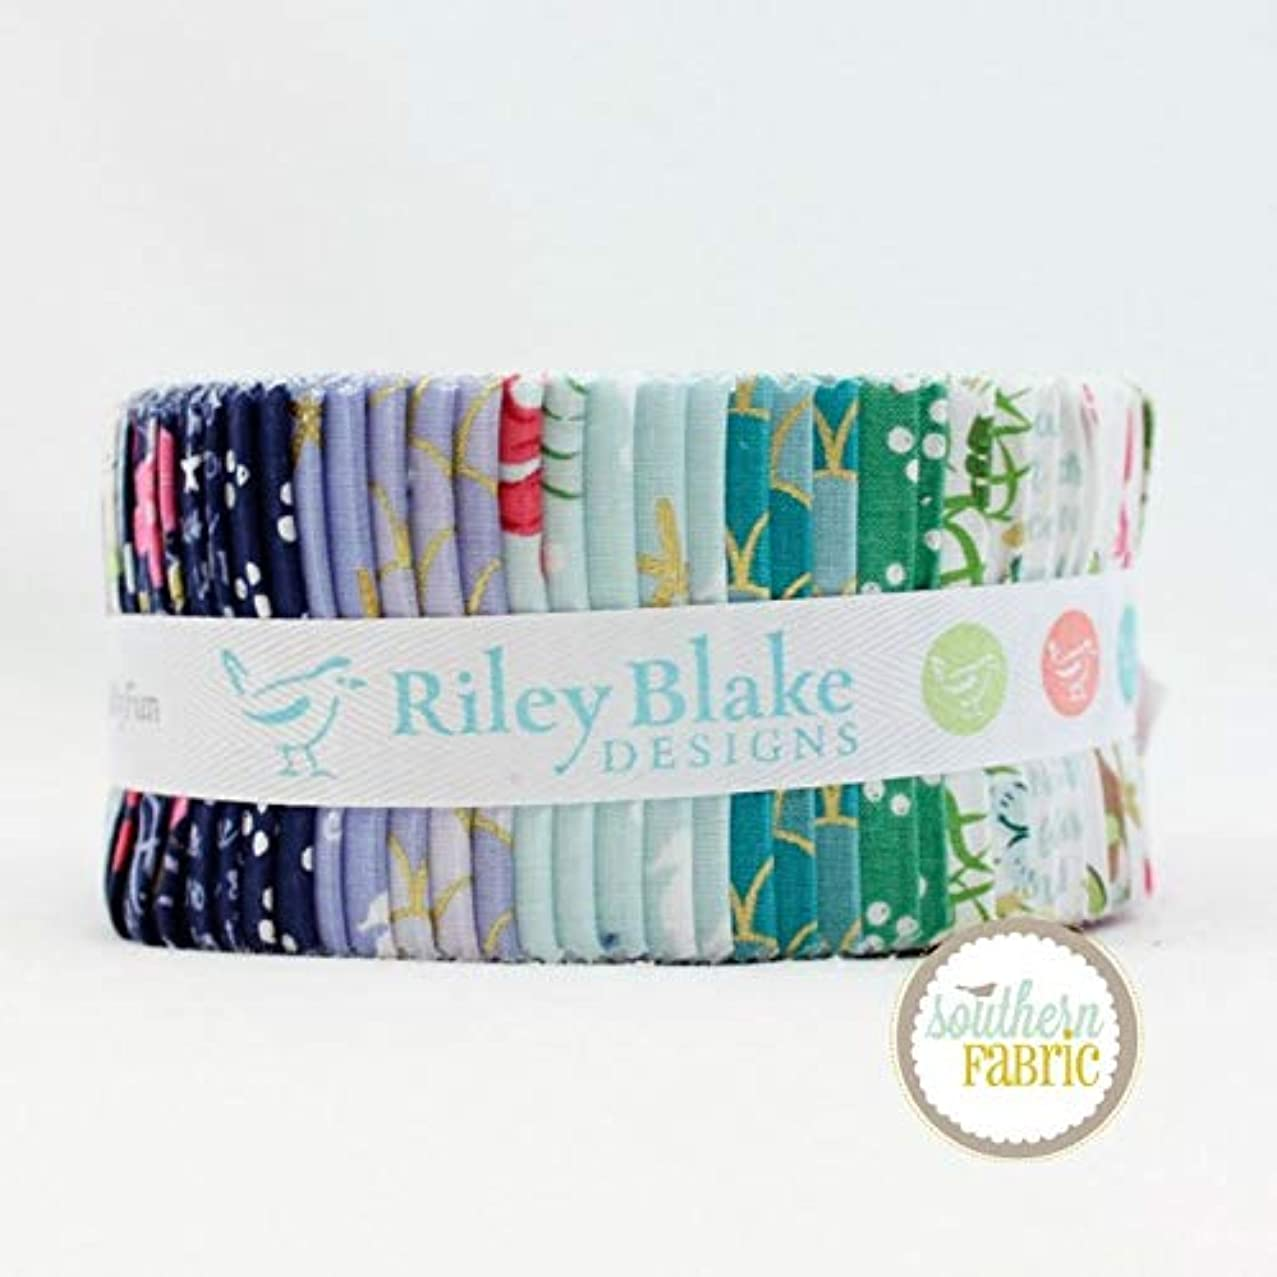 Riley Blake Lets be Mermaids Jelly Roll (40 pcs) by Melissa Mortenson 2.5 x 44 inches (6.35cm x 111.76cm) Fabric Strips DIY Quilt Fabric